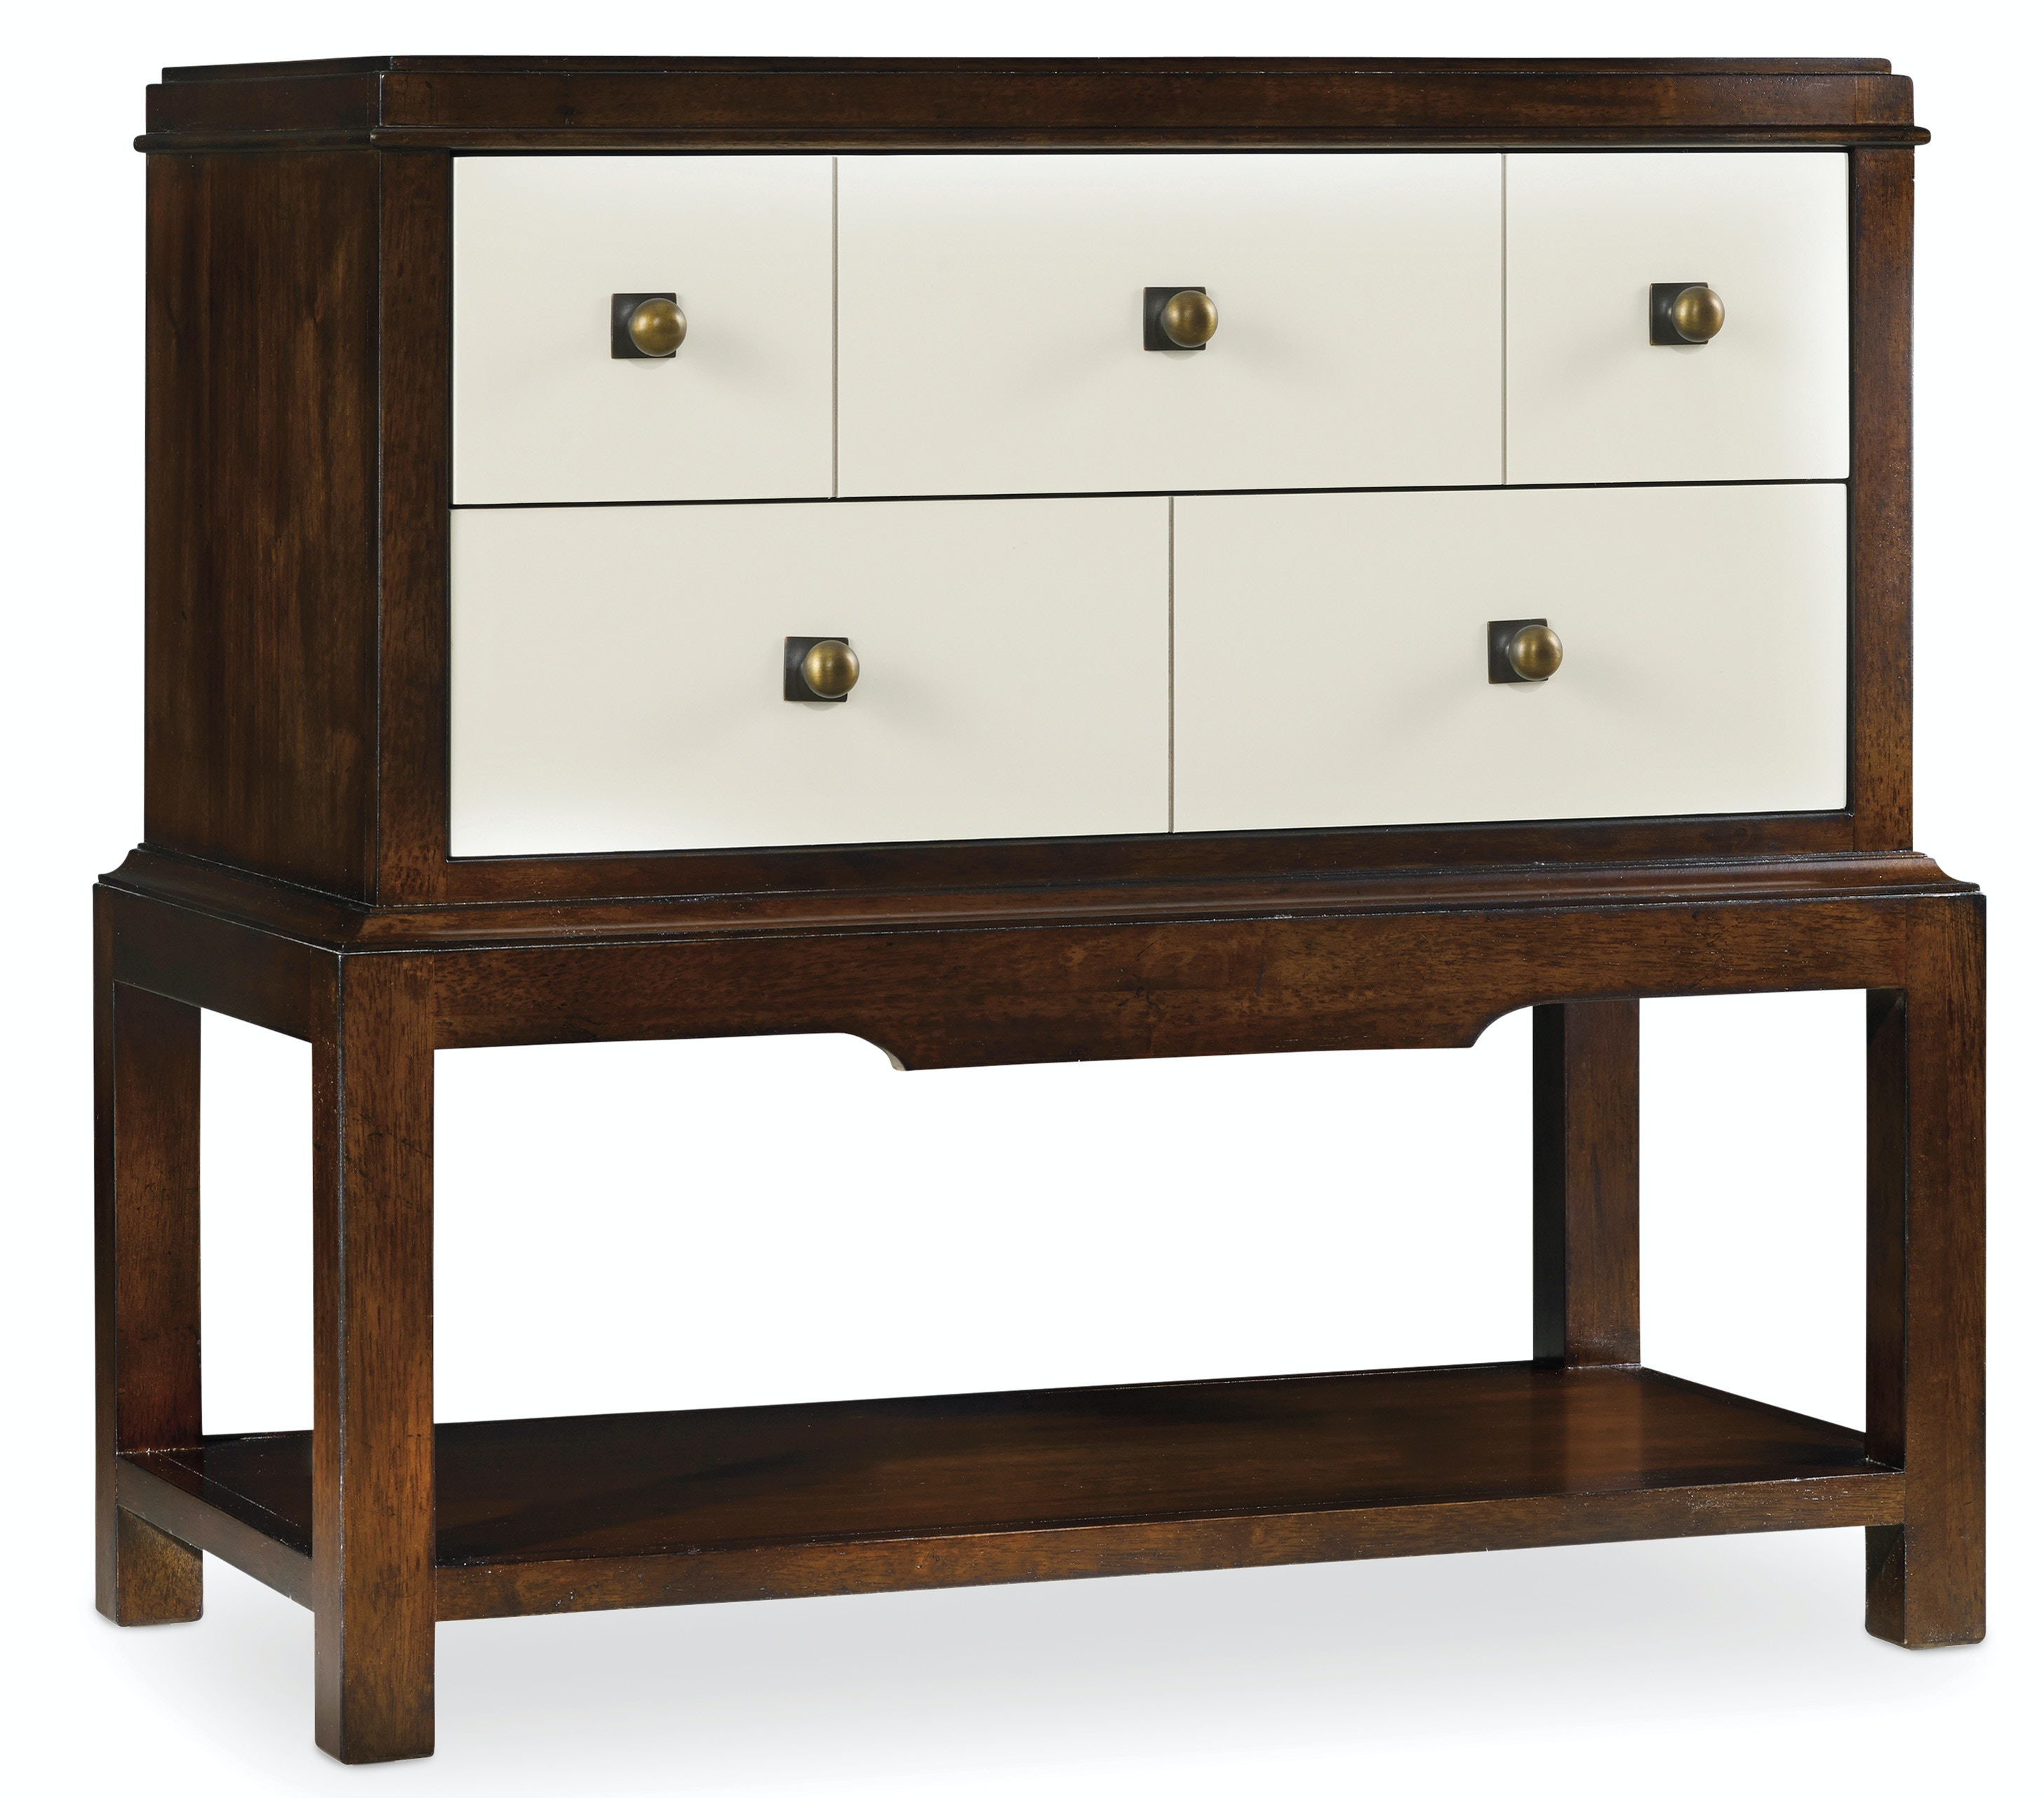 Hooker Furniture Bedroom Palisade Two Drawer Nightstand  : 5185 90116 from finessehomeliving.com size 1024 x 768 jpeg 43kB